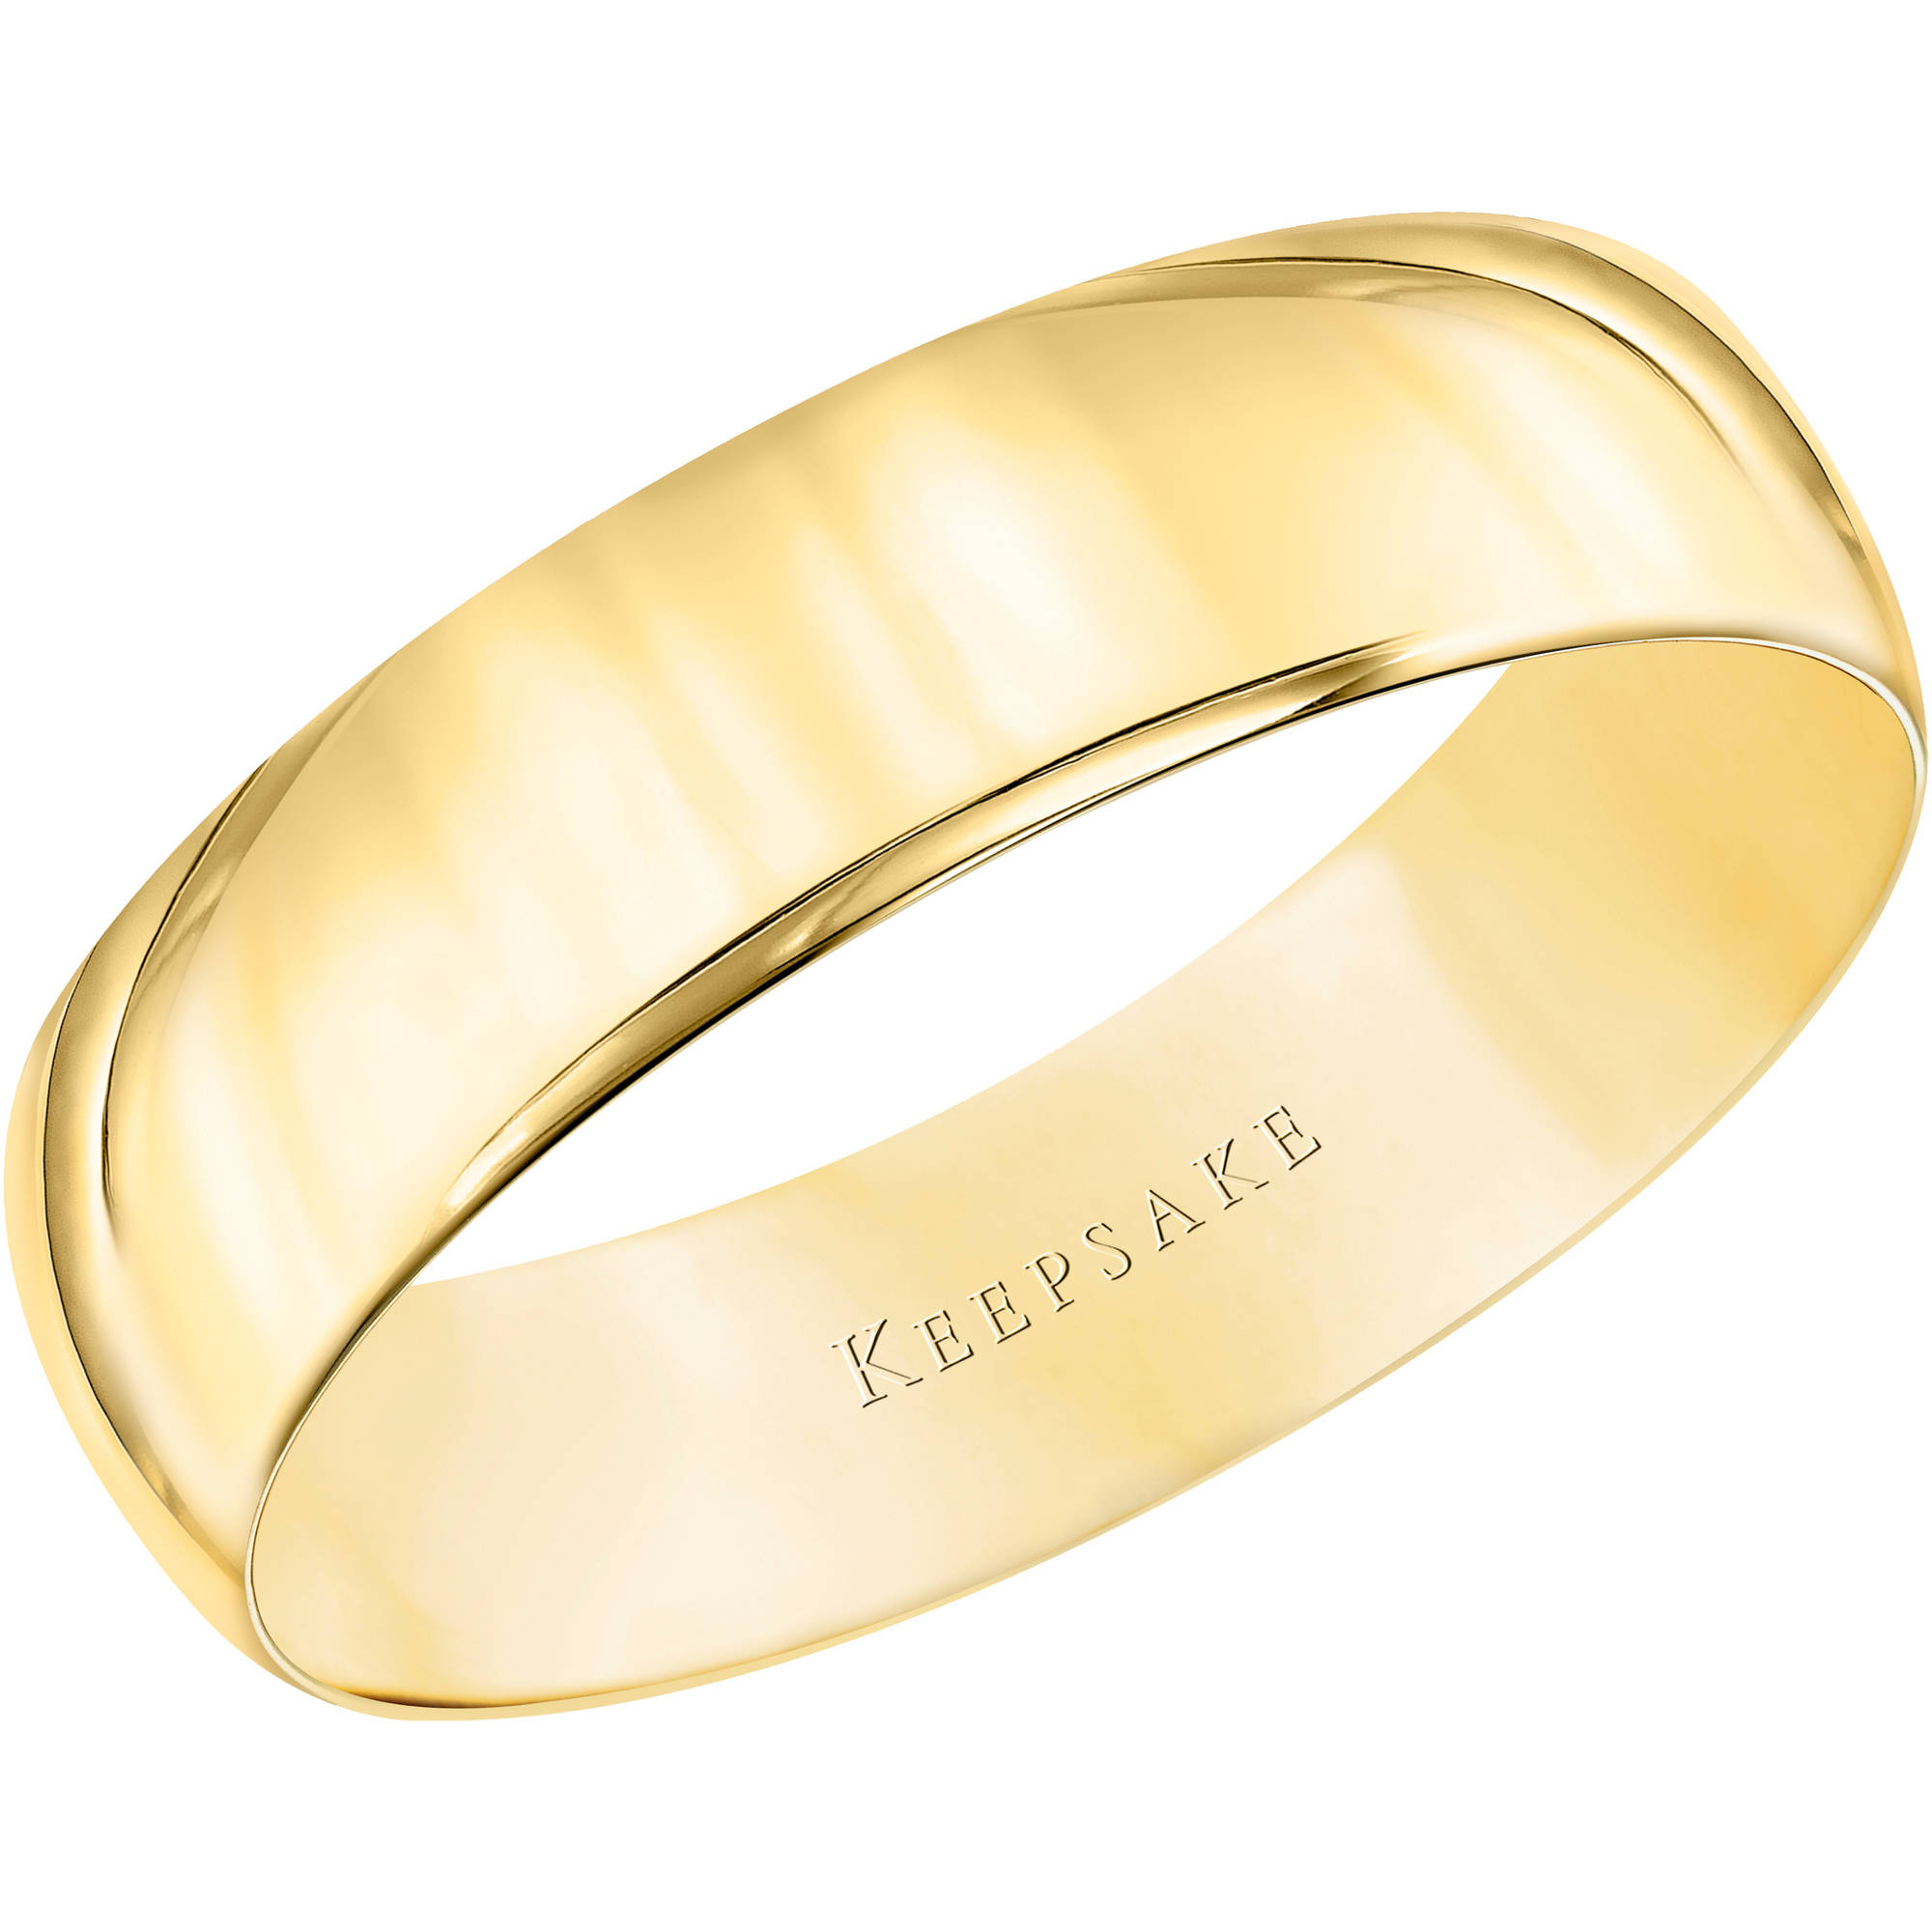 Keepsake 10kt Yellow Gold Comfort Fit Wedding Band, 5.5mm